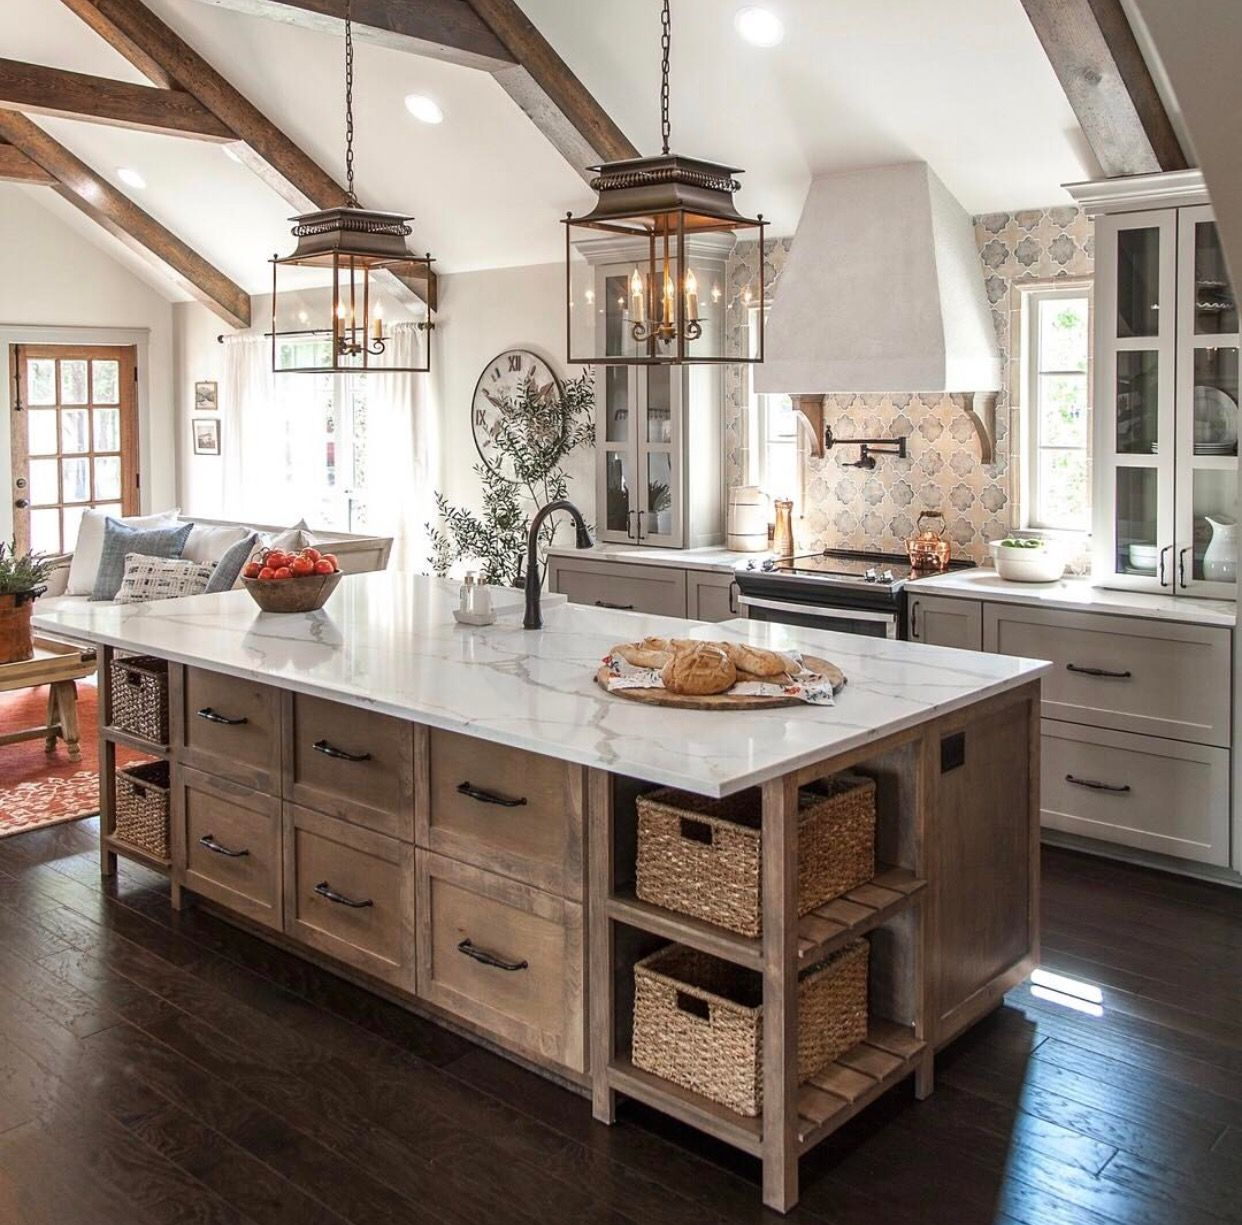 lt wood cabinets flanking white cooktop cabinet similar to farmhouse kitchen design on kitchen remodel light wood cabinets id=62091